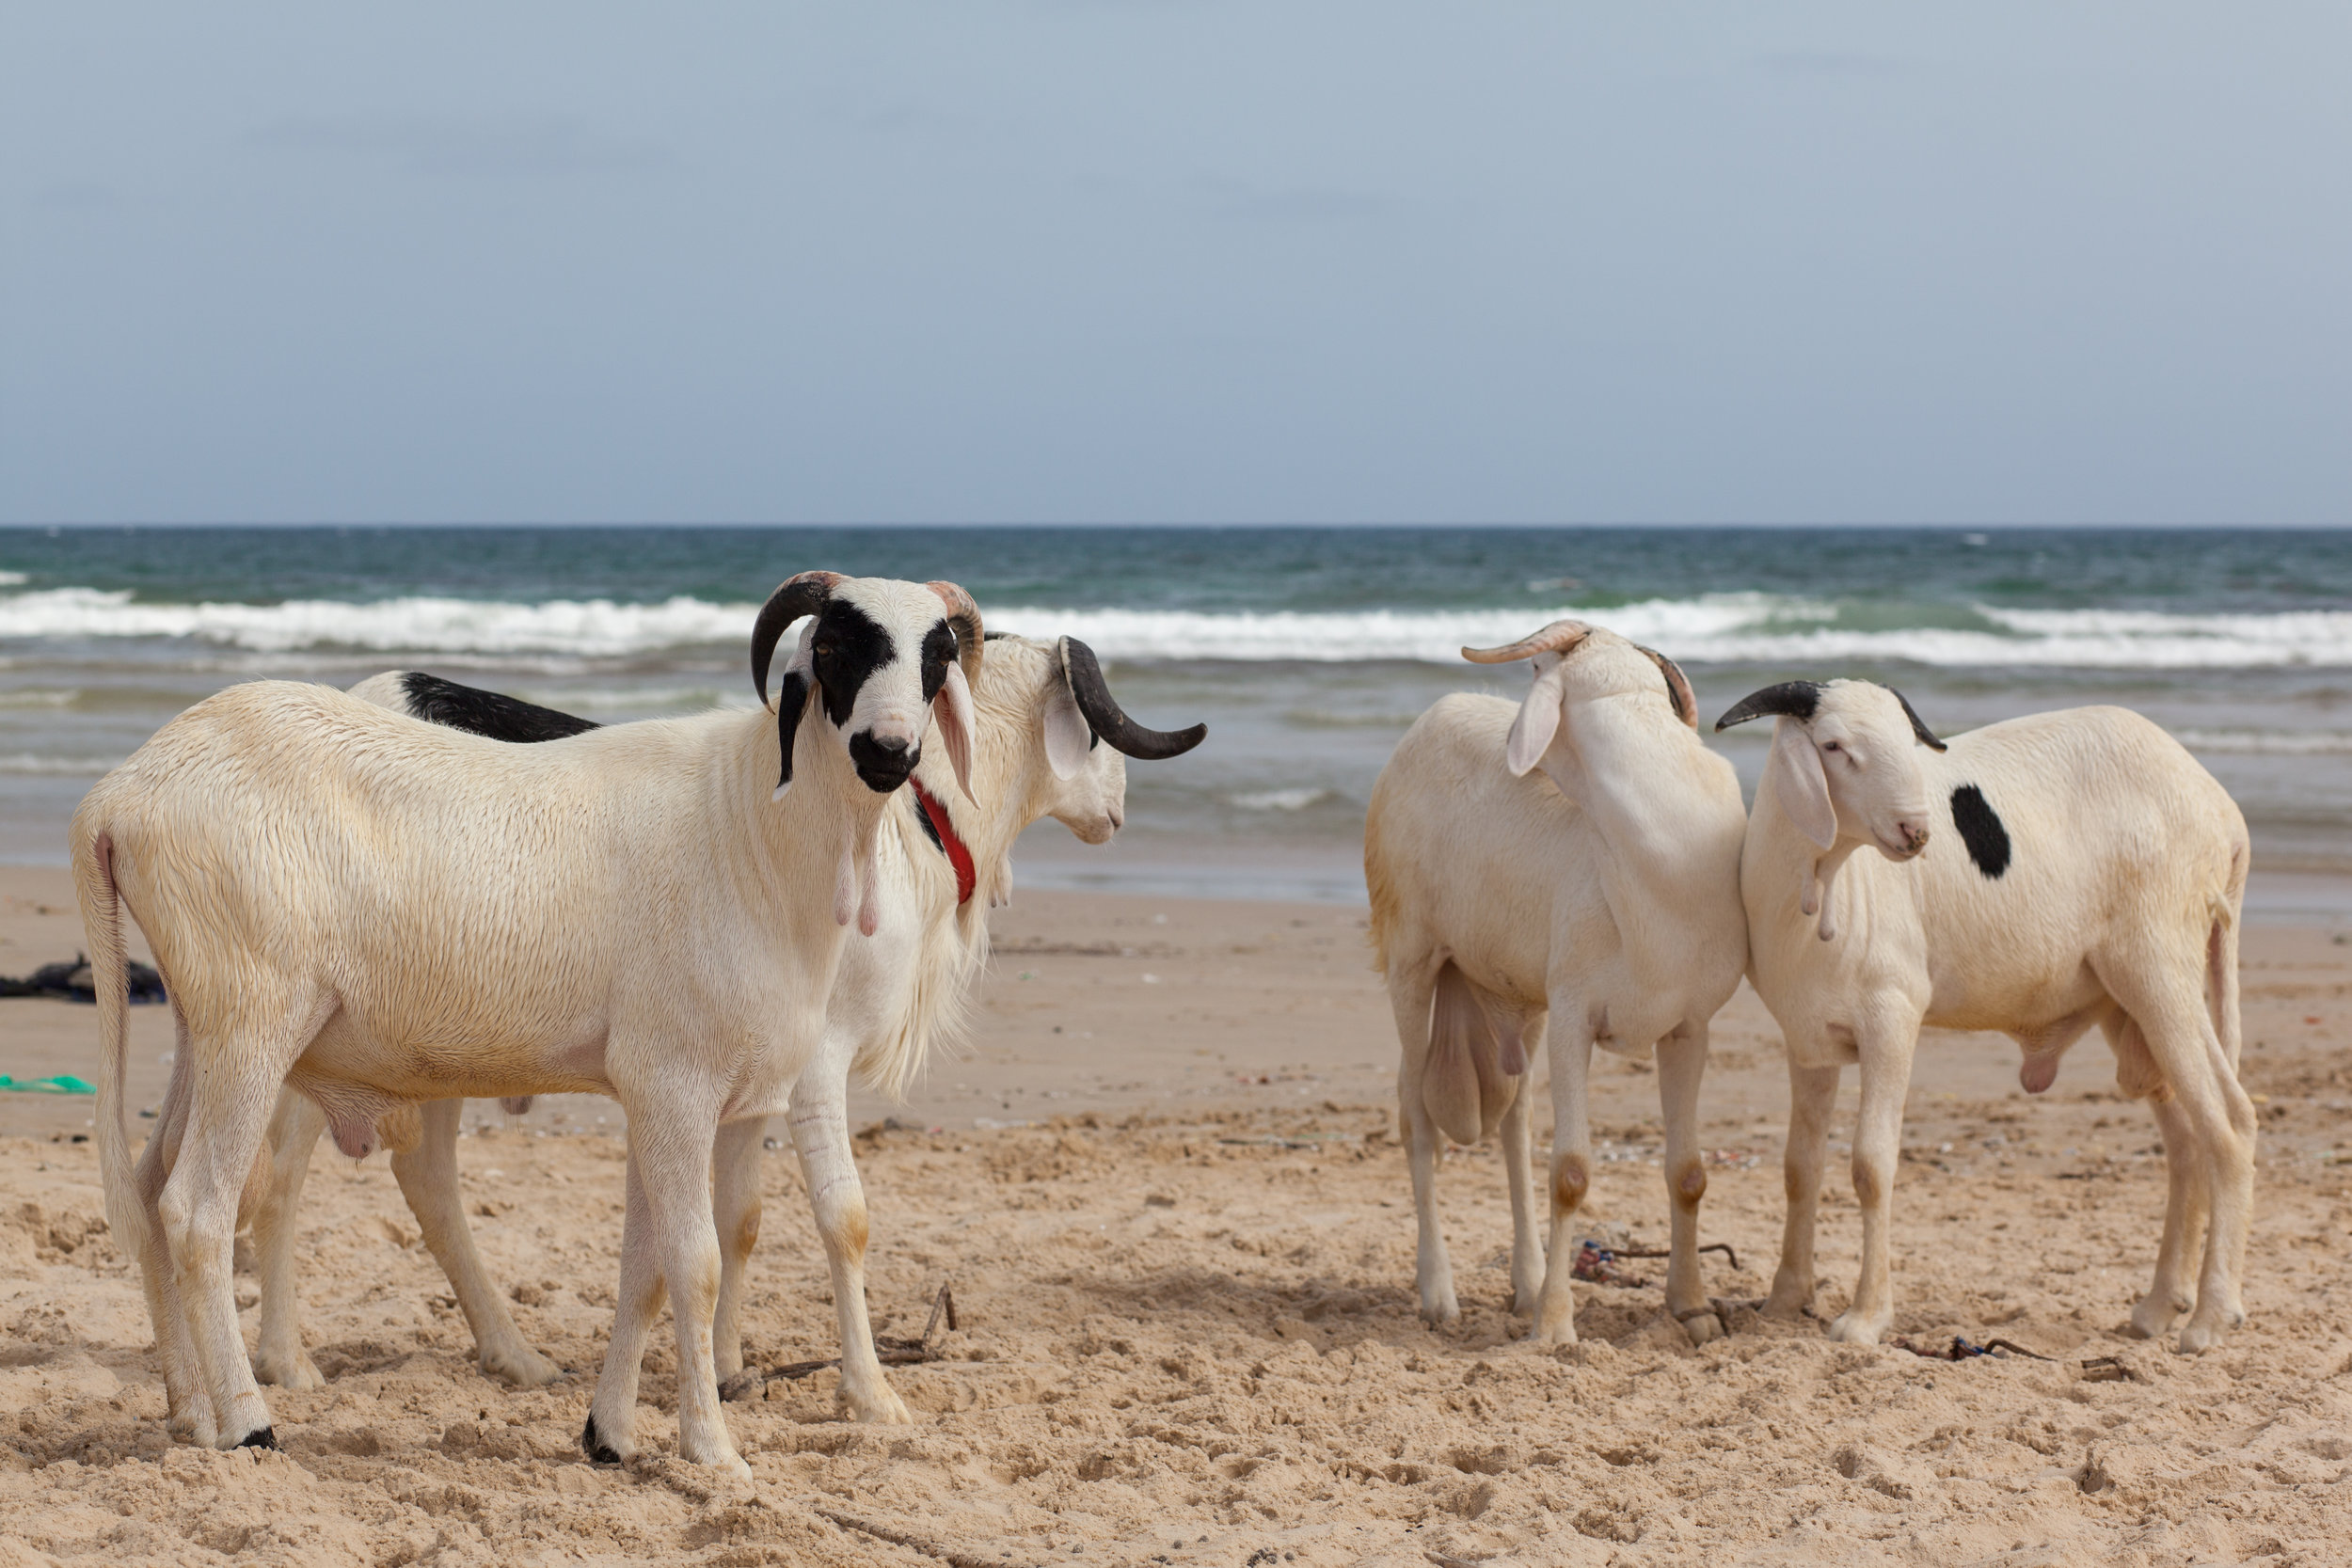 Sheep on the beach at Yoff in Dakar.